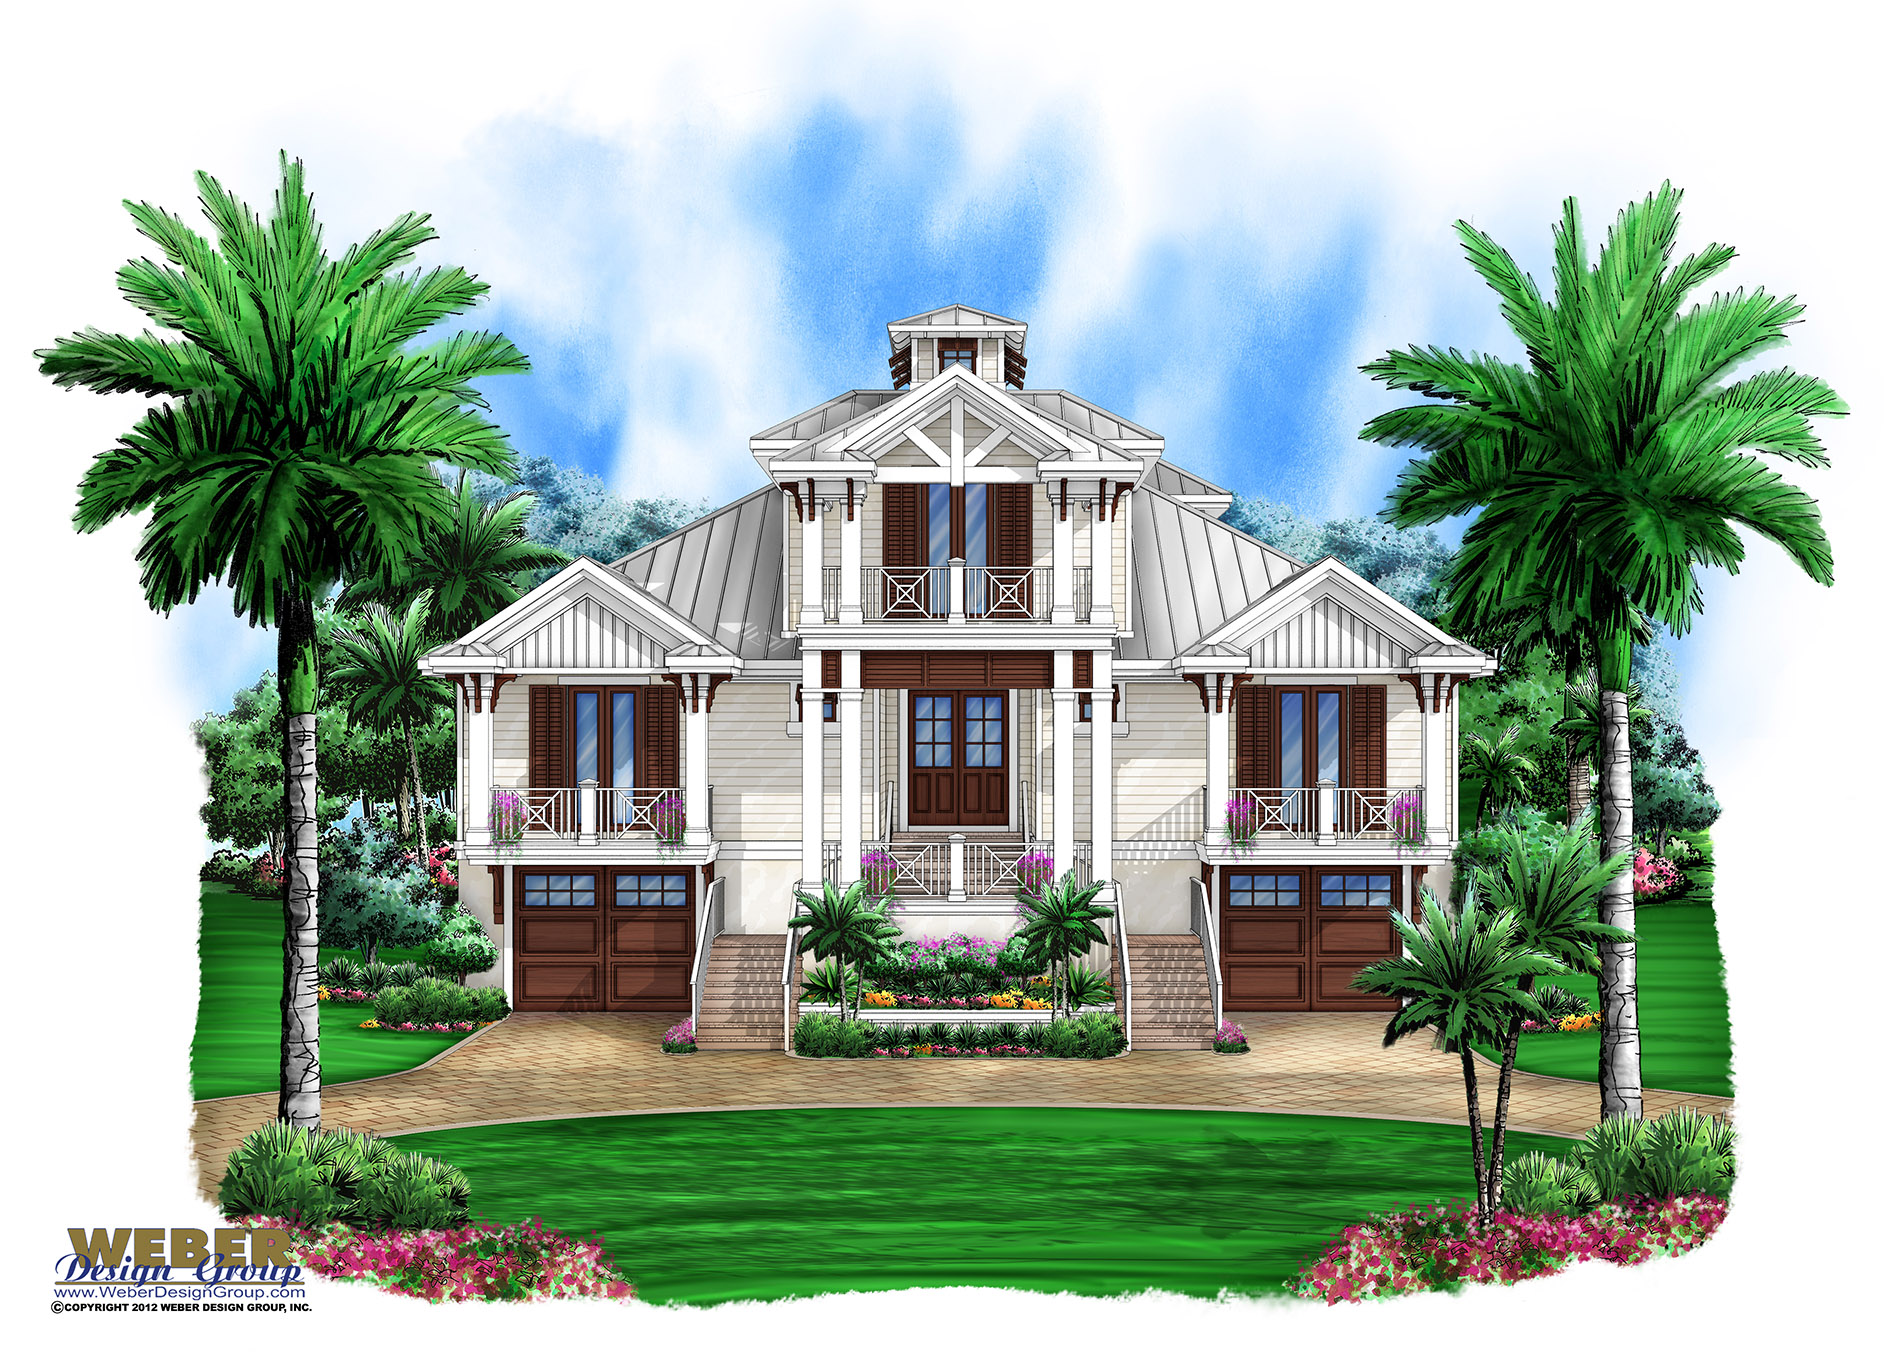 3 story old florida house plan beach outdoor living for 3 story house